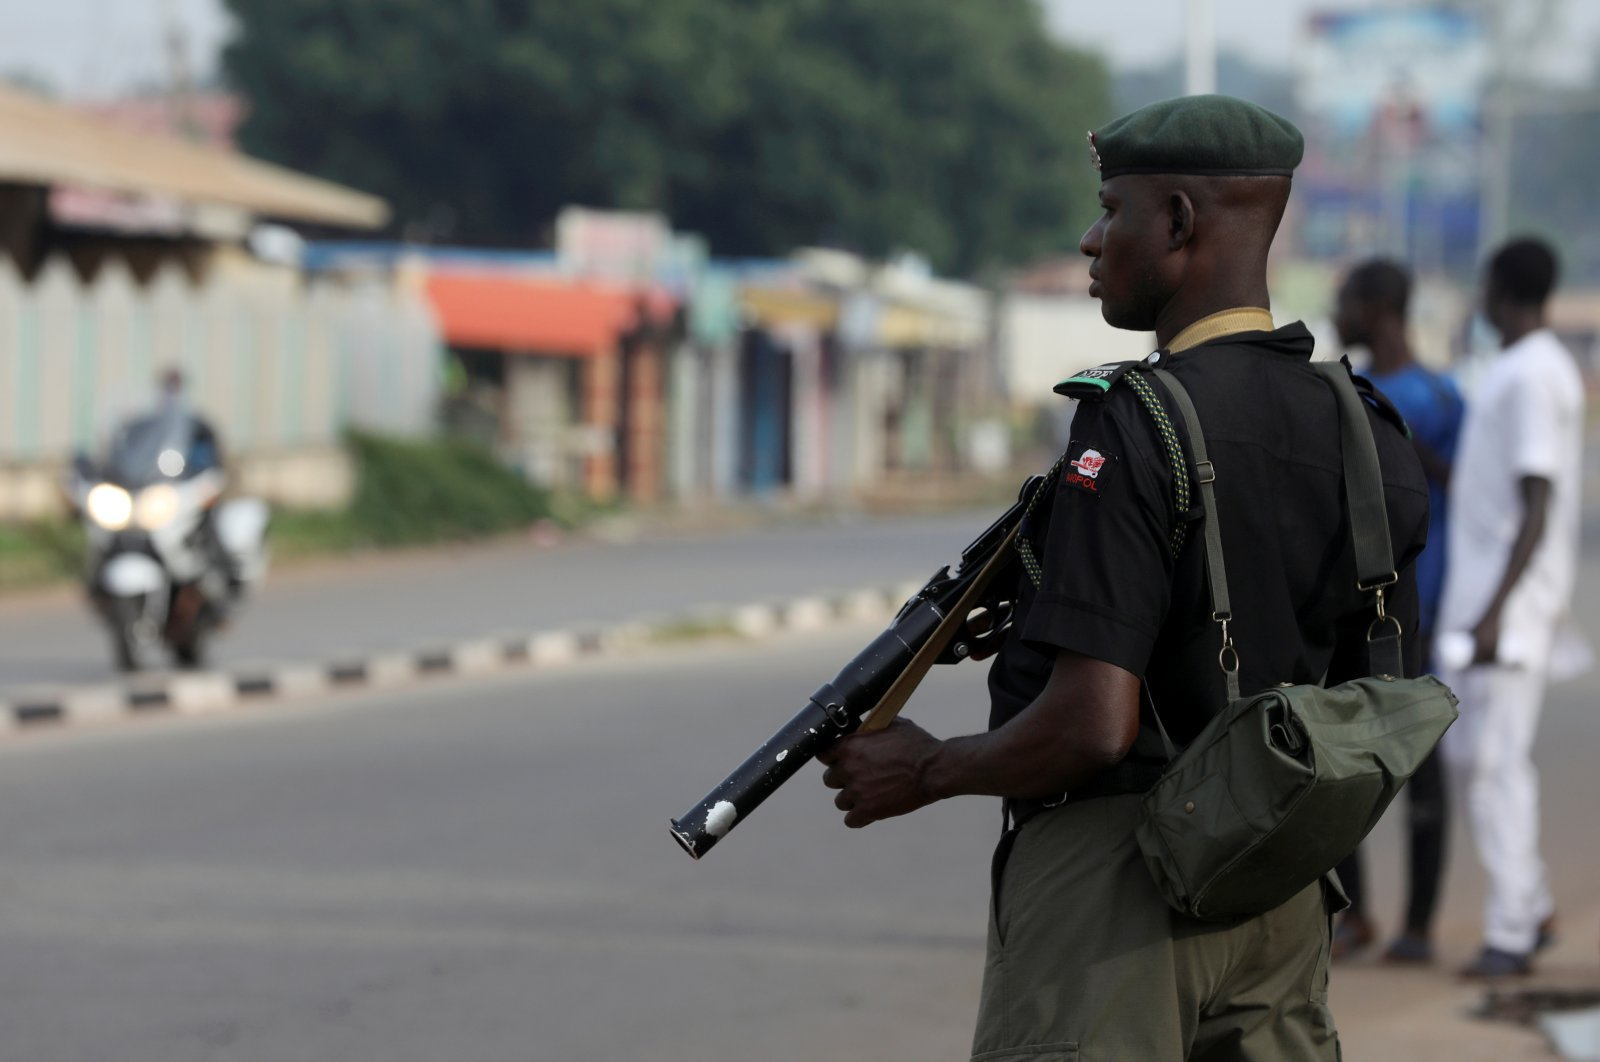 A member of security forces stands guard outside a court in the northern city of Kaduna, Nigeria, Oct. 4, 2018. (Reuters Photo)